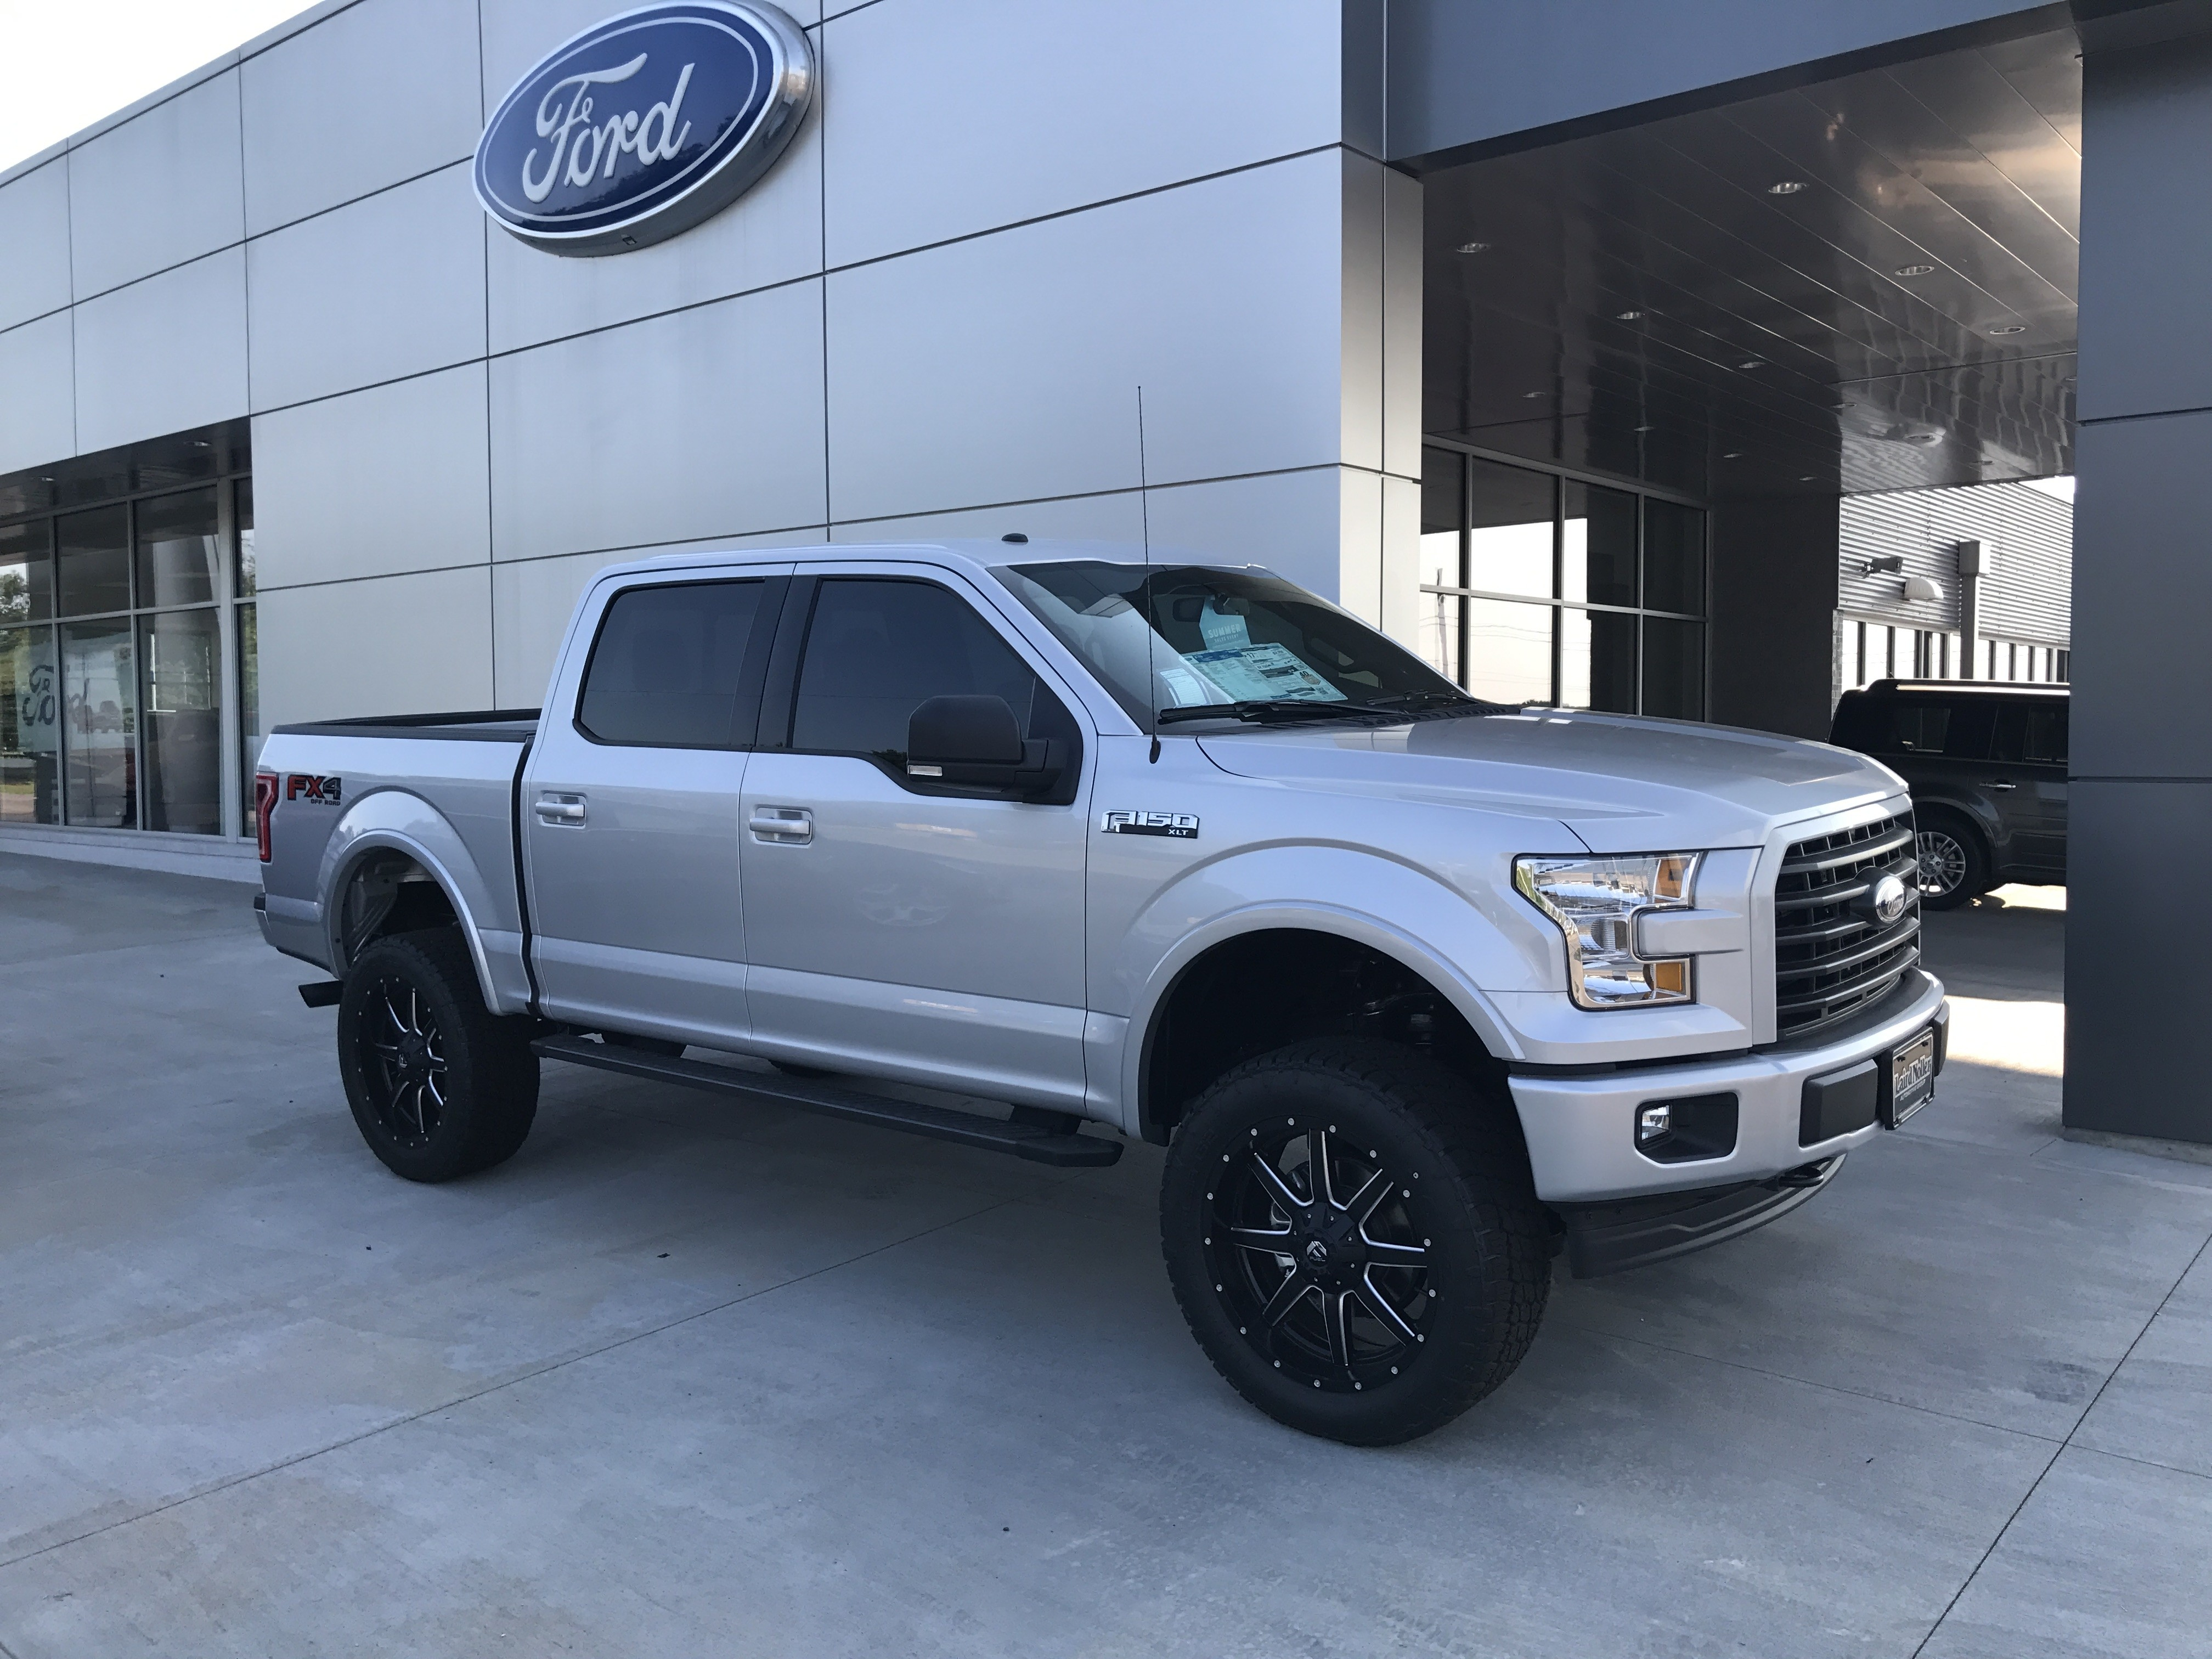 Lifted Ford F150 For Sale >> 2017 Lifted Ford F 150 Trucks Laird Noller Auto Group